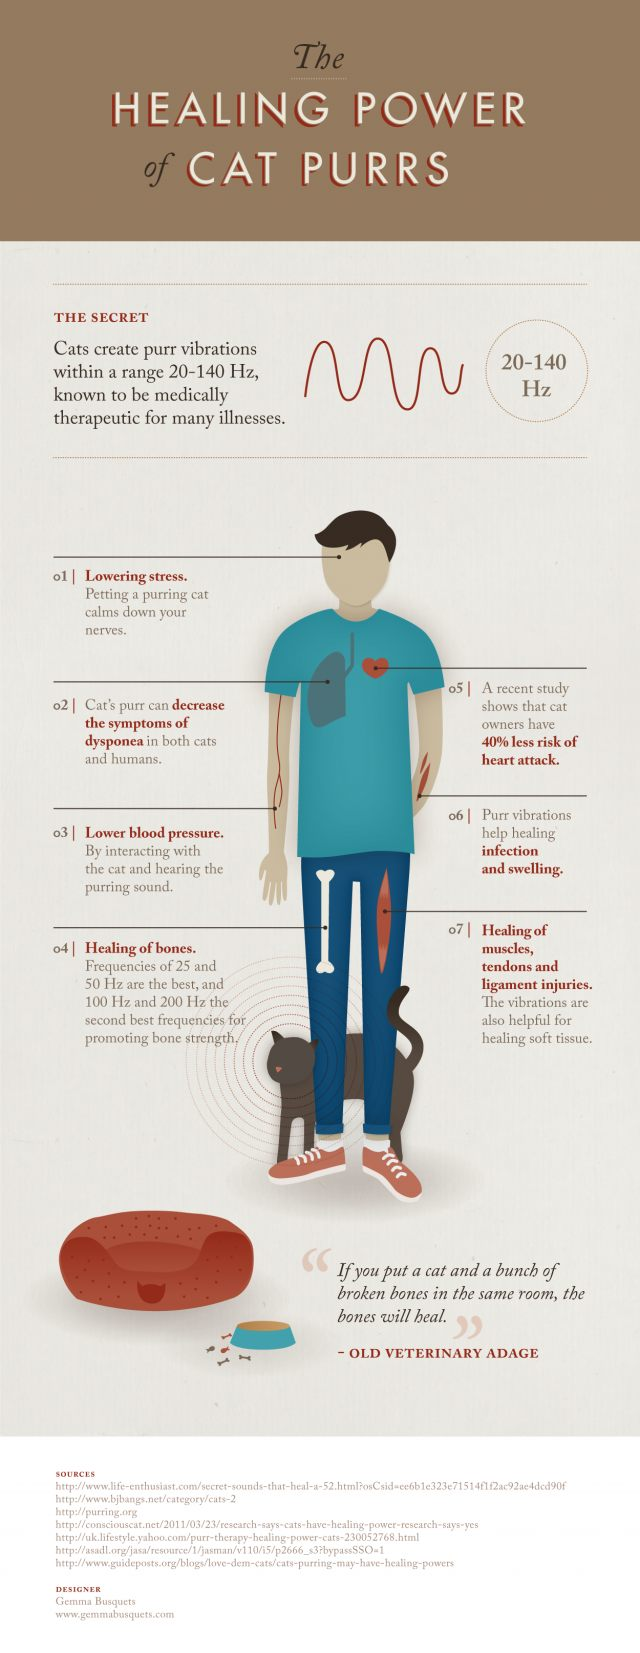 the-healing-power-of-cat-purrs-infographic